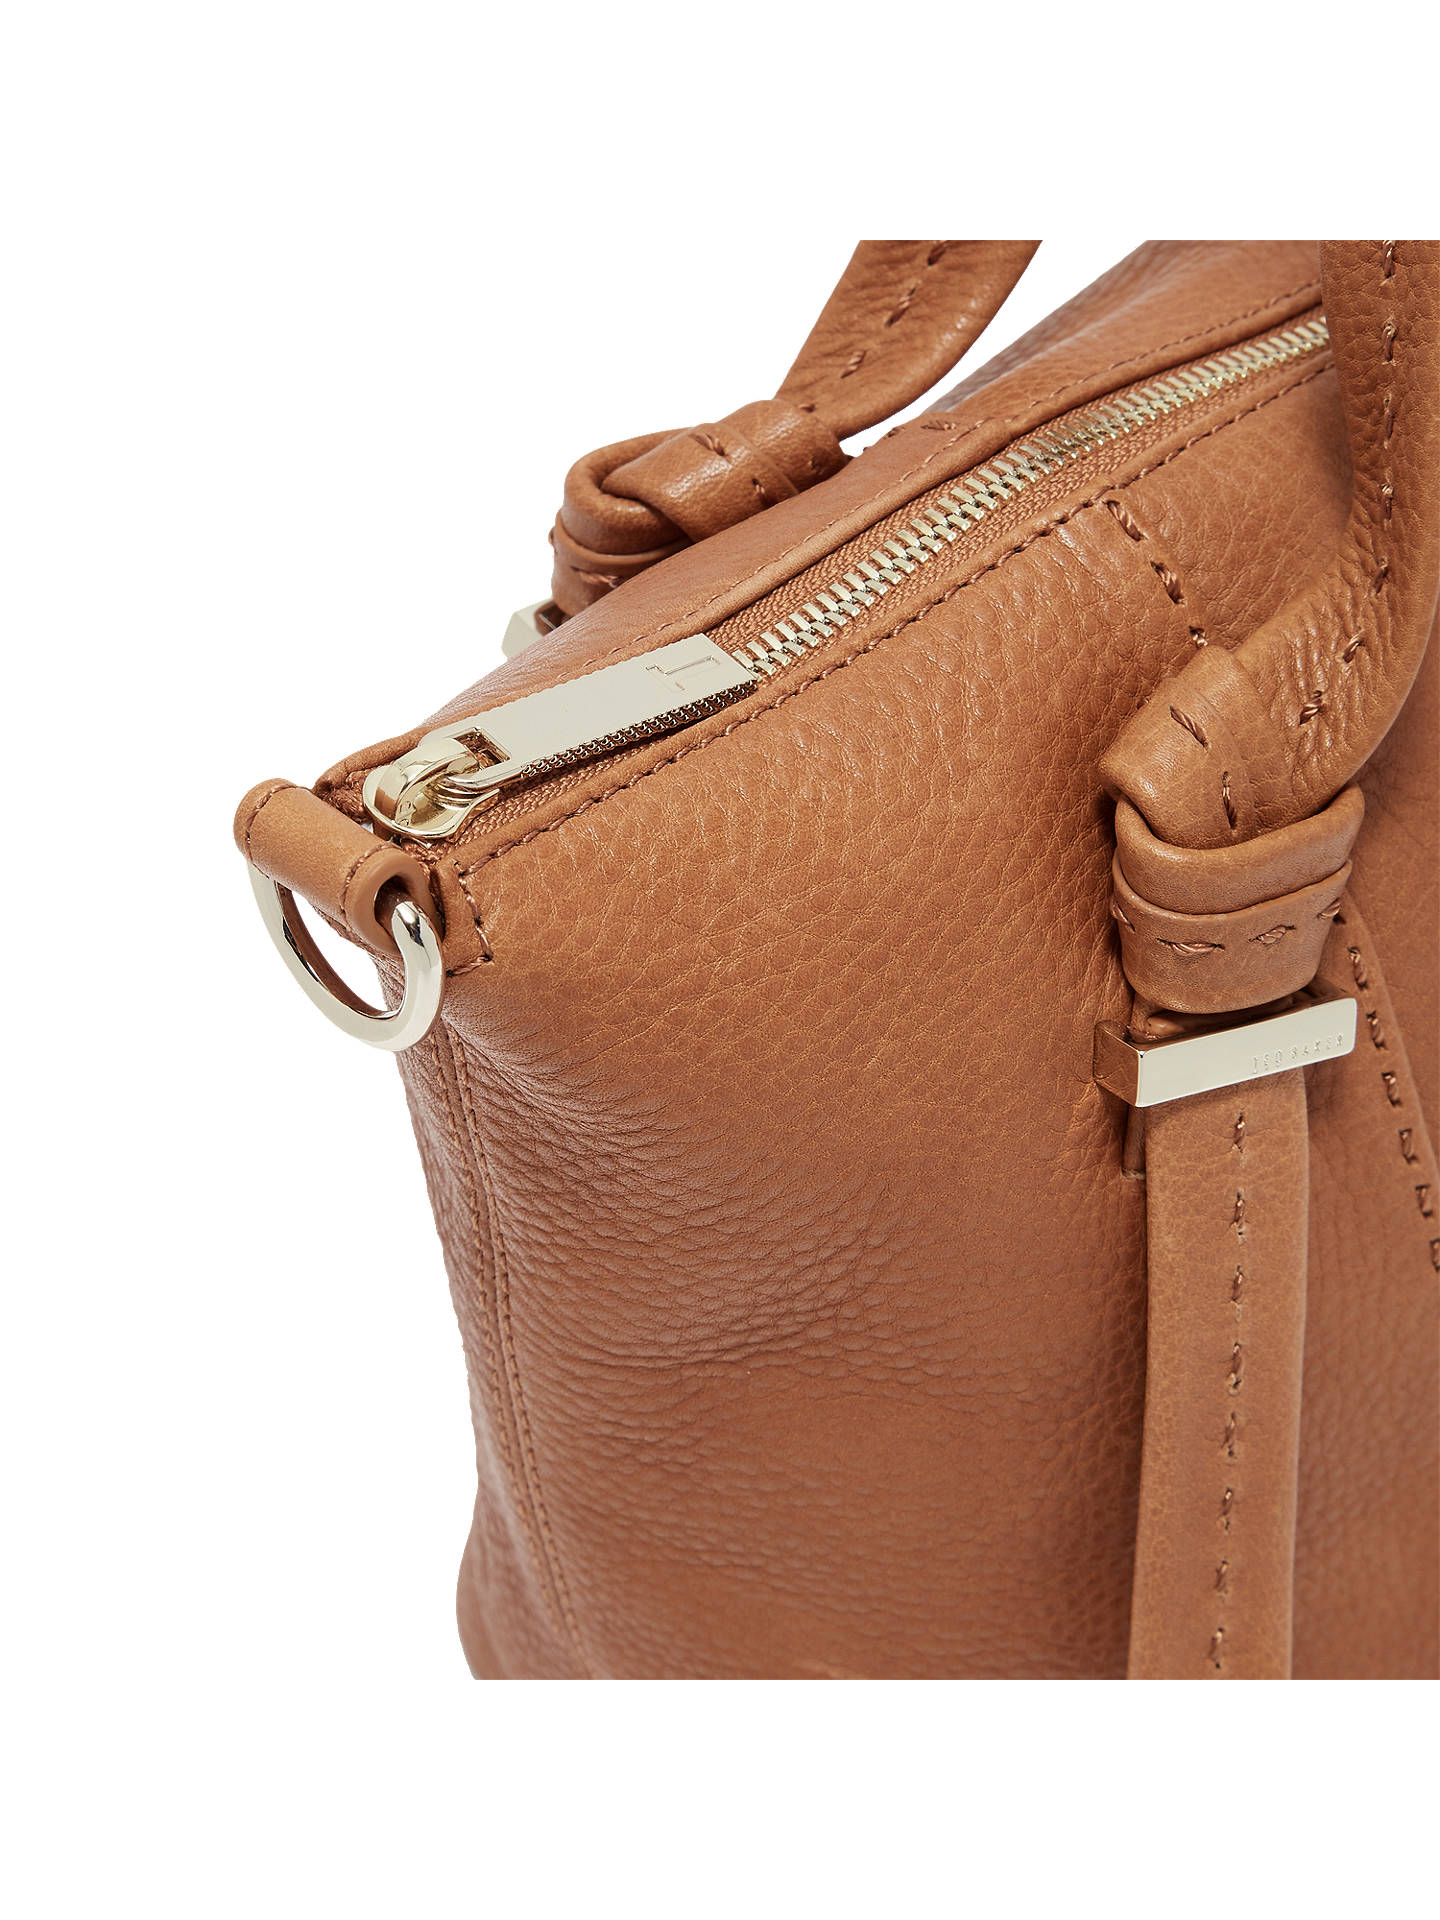 BuyTed Baker Olmia Knotted Handle Small Leather Tote Bag, Tan Online at johnlewis.com